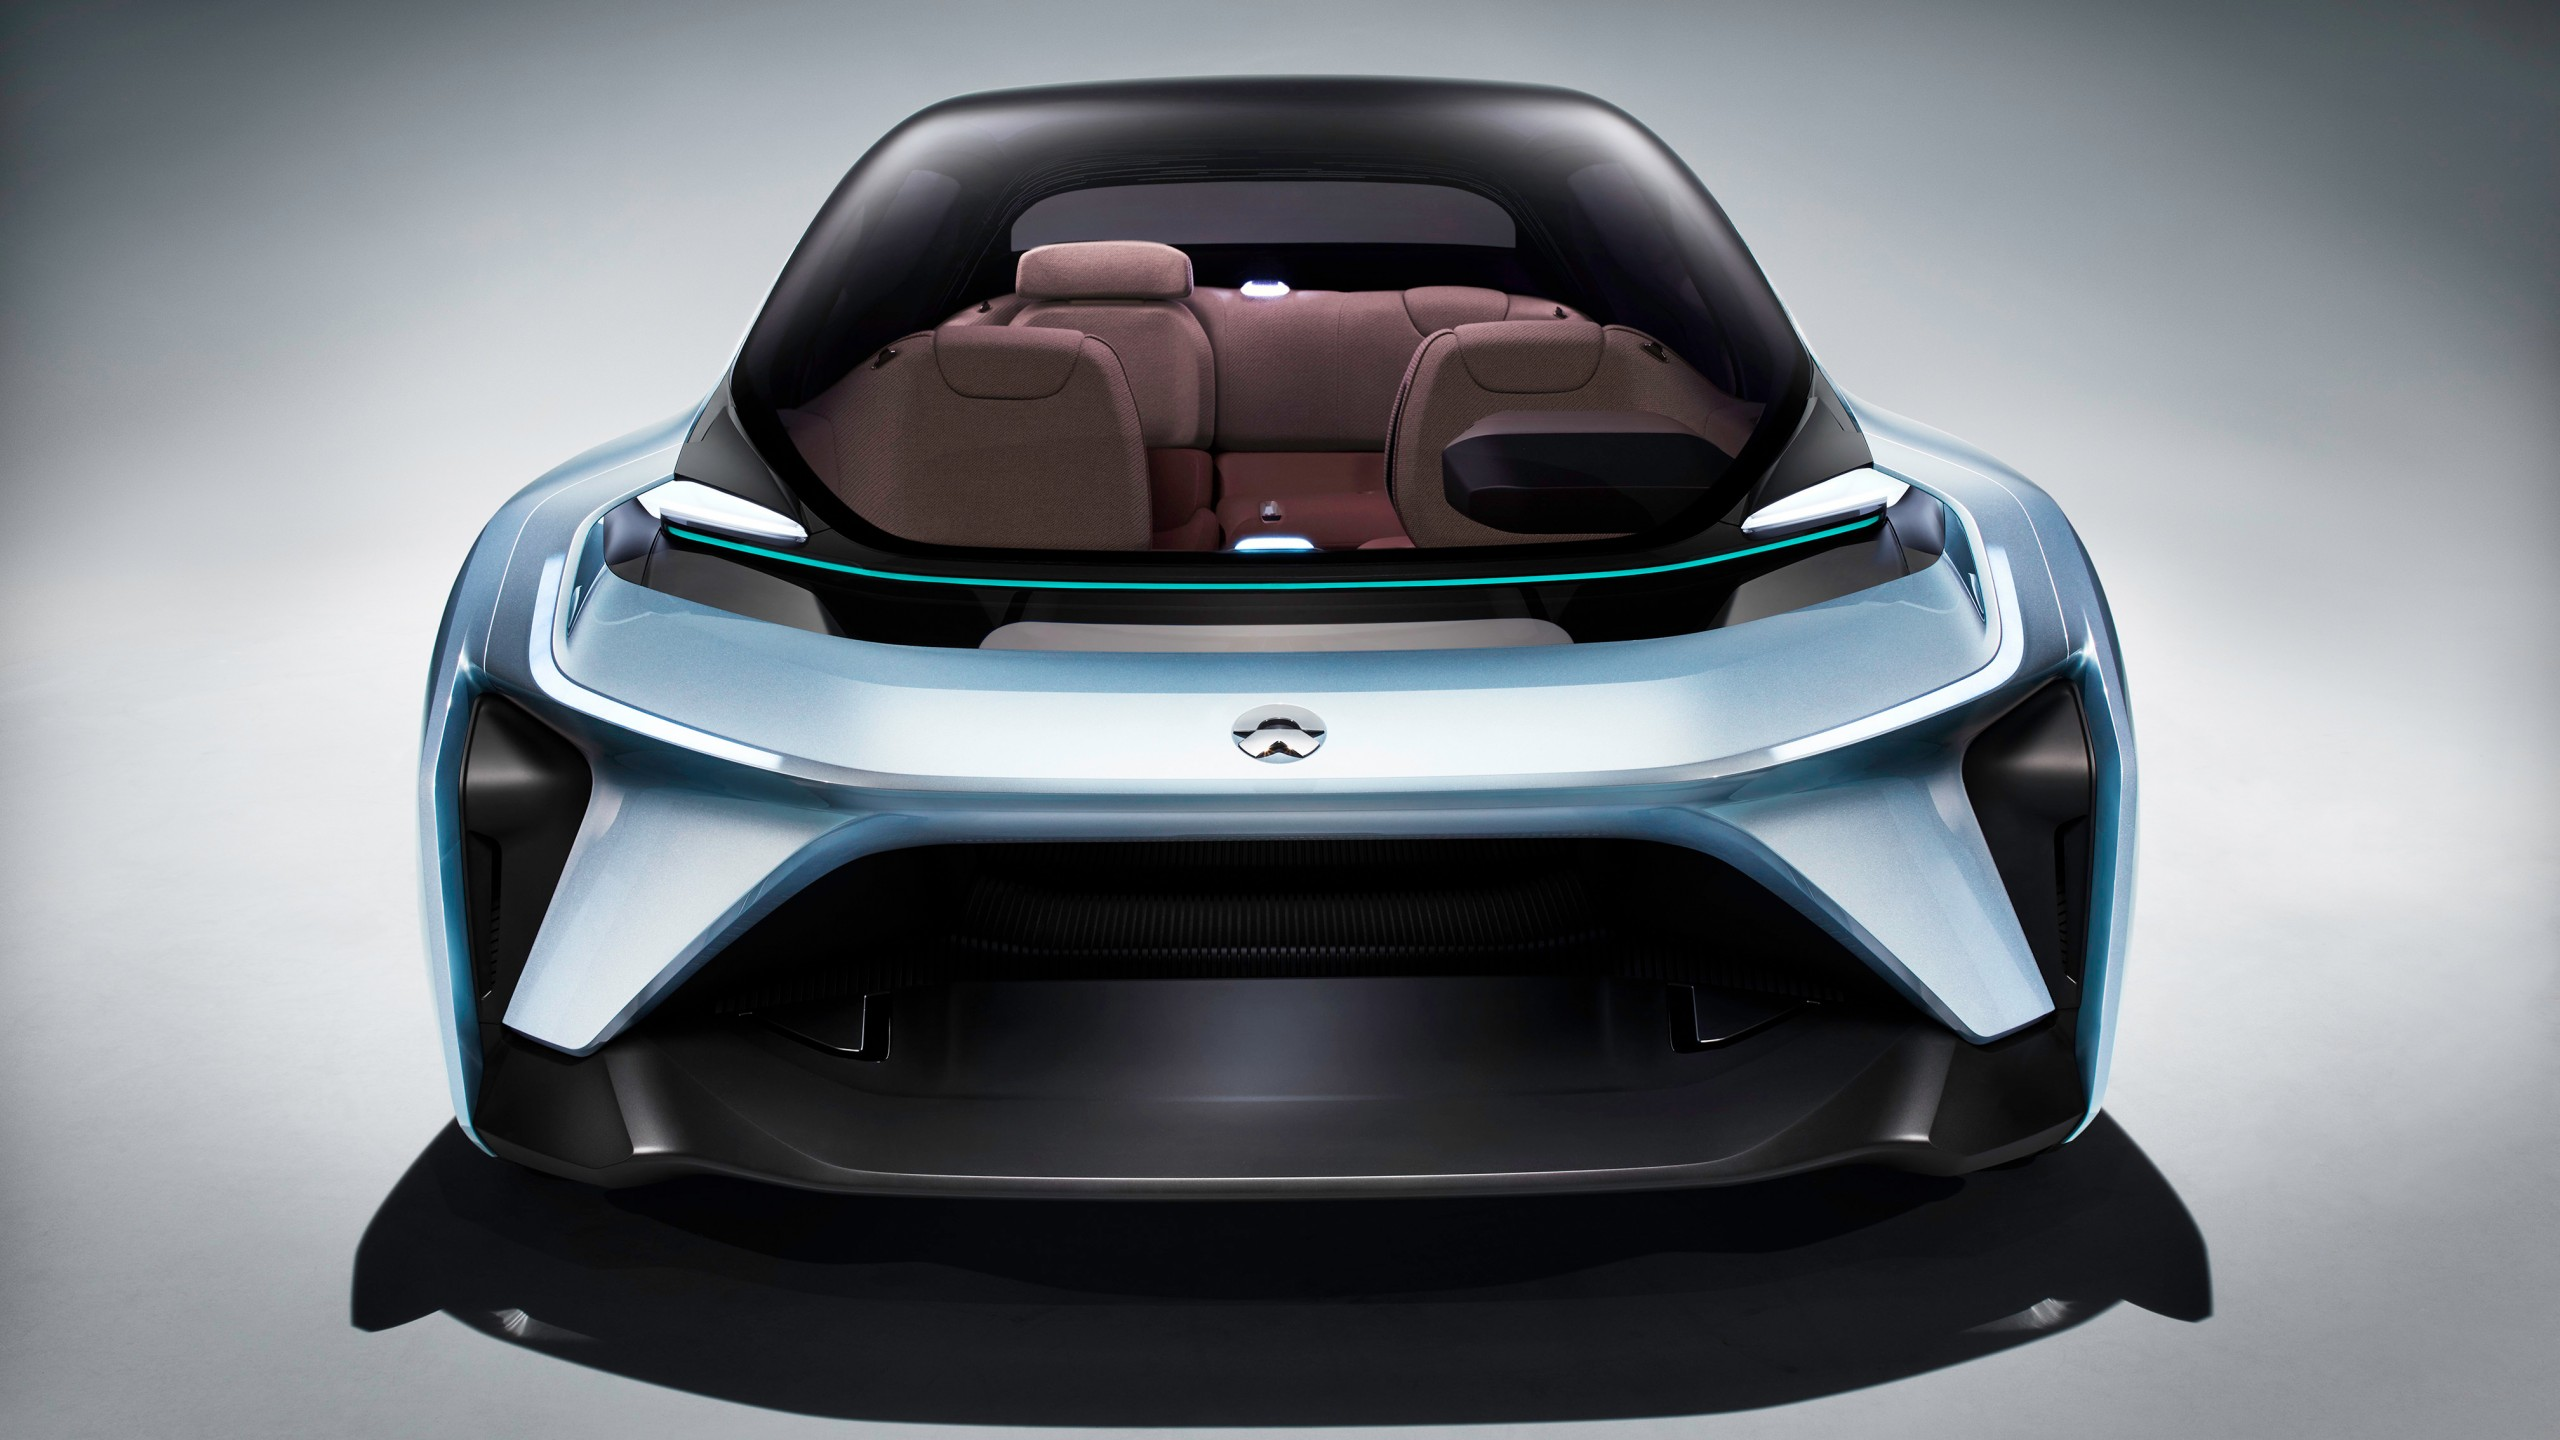 Future Car Wallpaper Hd For Desktop Nio Eve Concept Car 4k 3 Wallpaper Hd Car Wallpapers